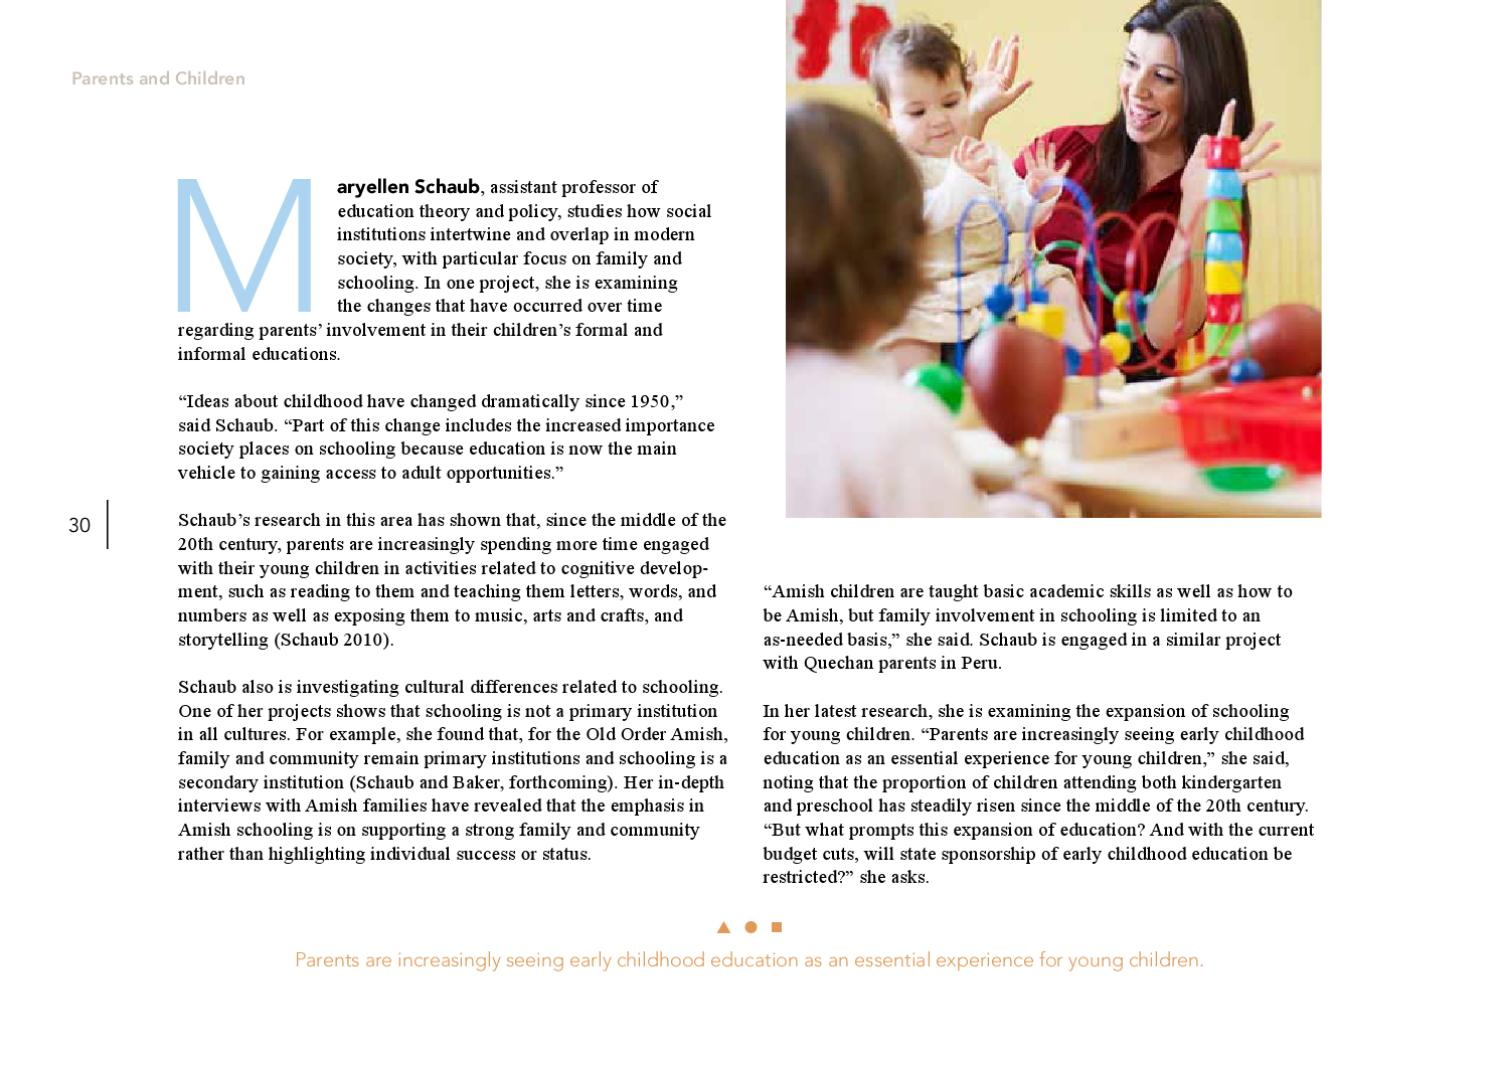 research project ideas for early childhood studies